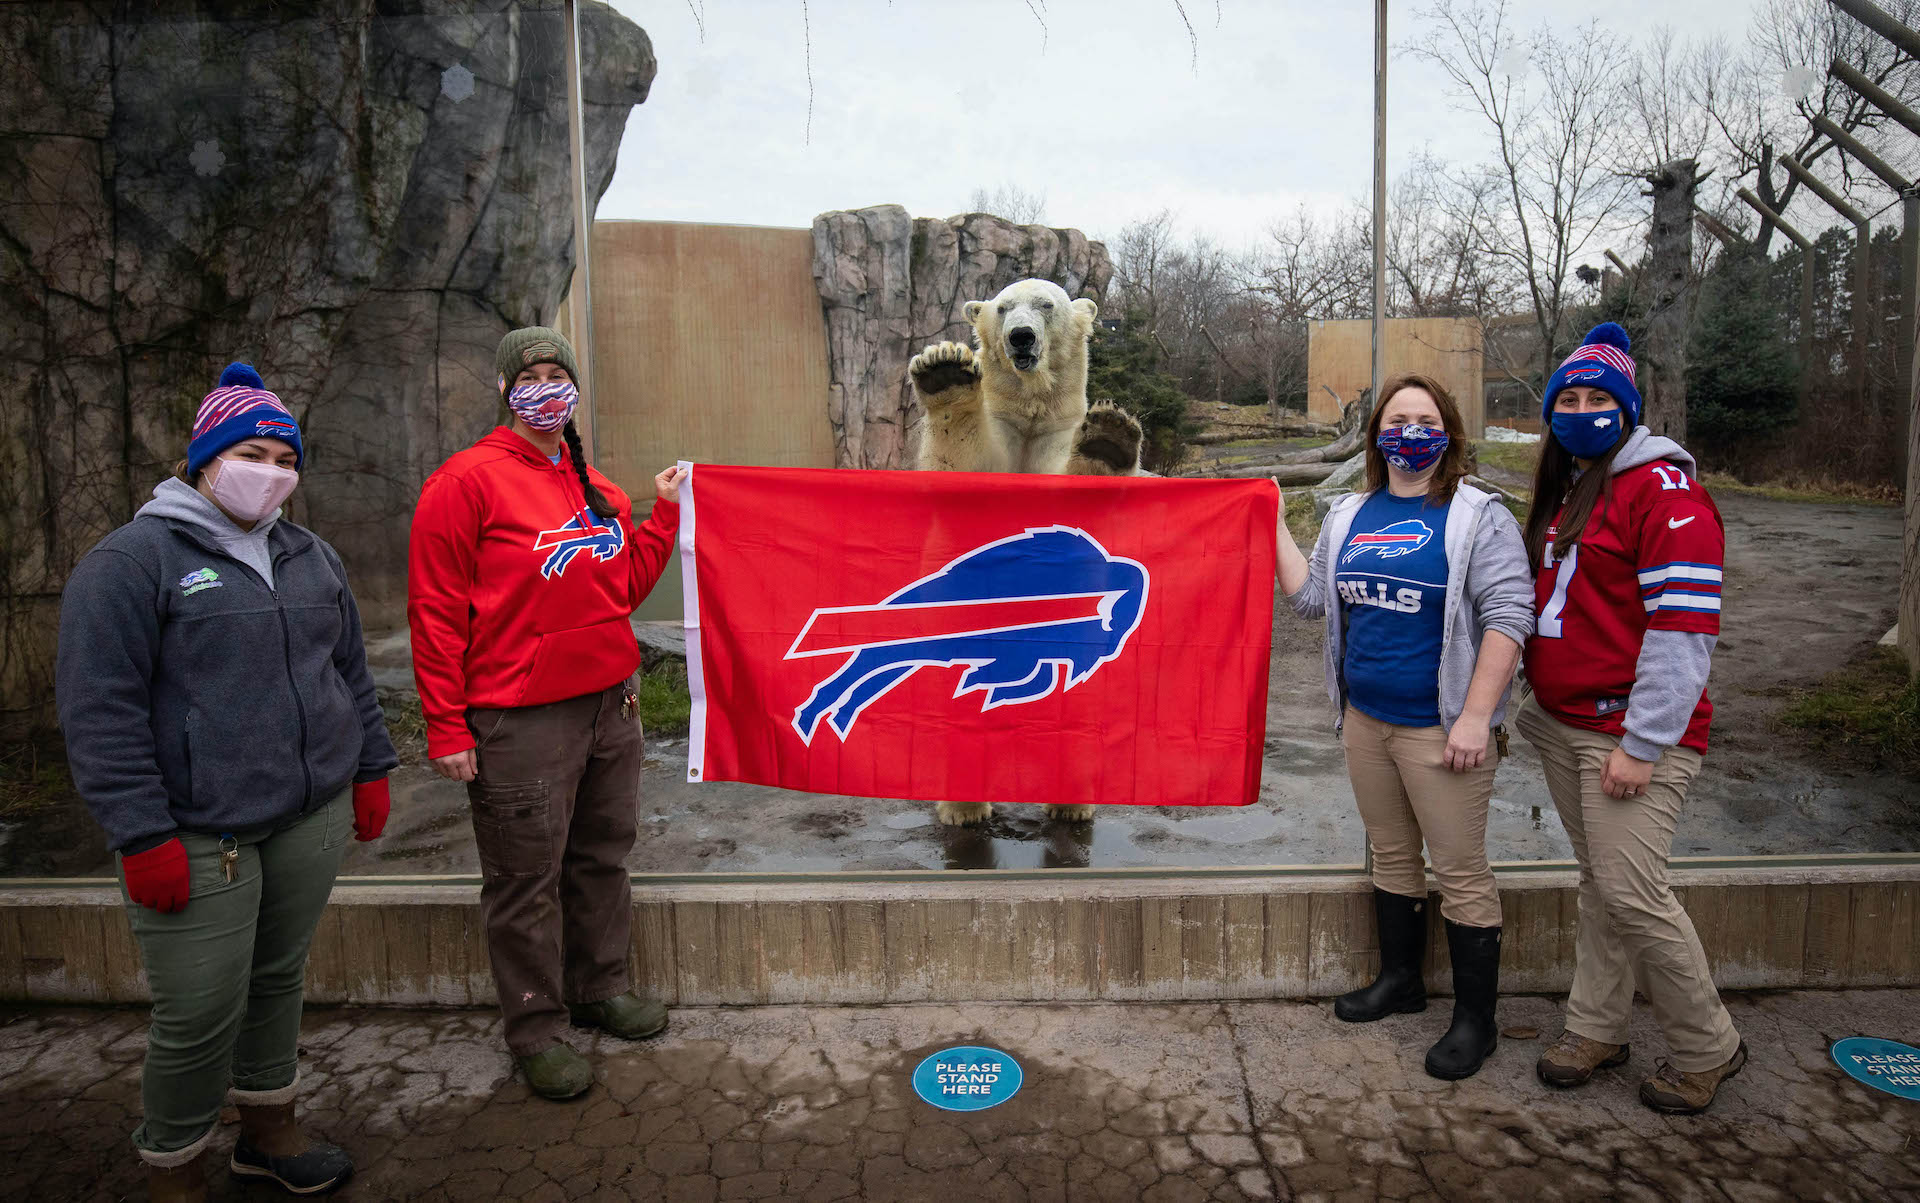 There is, perhaps, no larger Buffalo Bills fan than Luna, shown here with Buffalo Zoo staff.